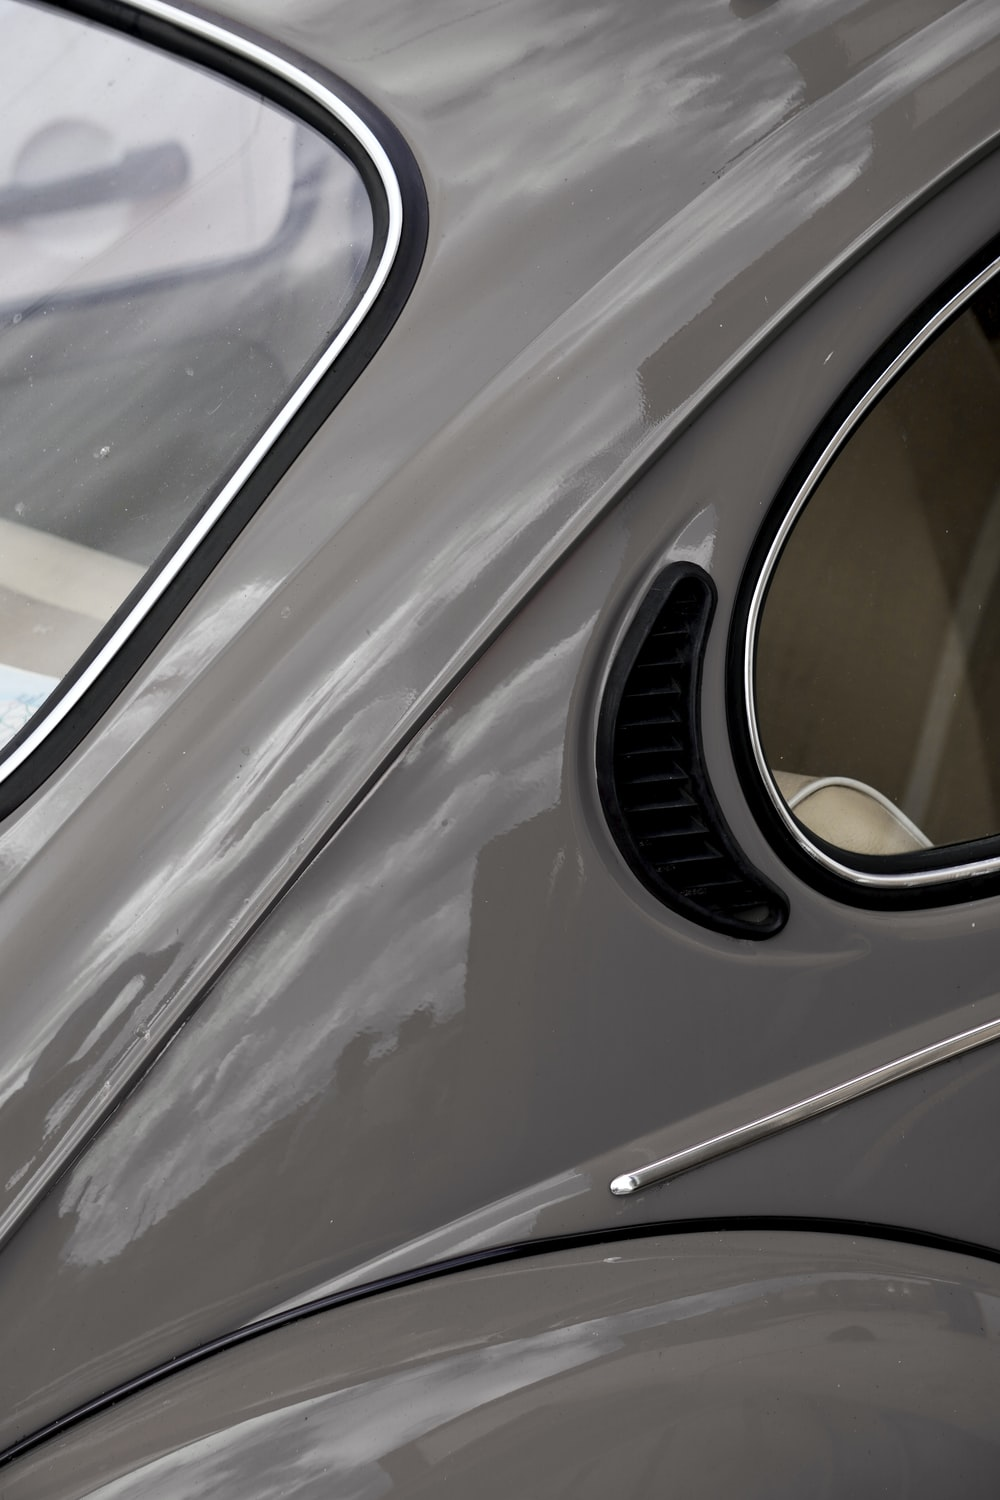 silver car with white and black car door